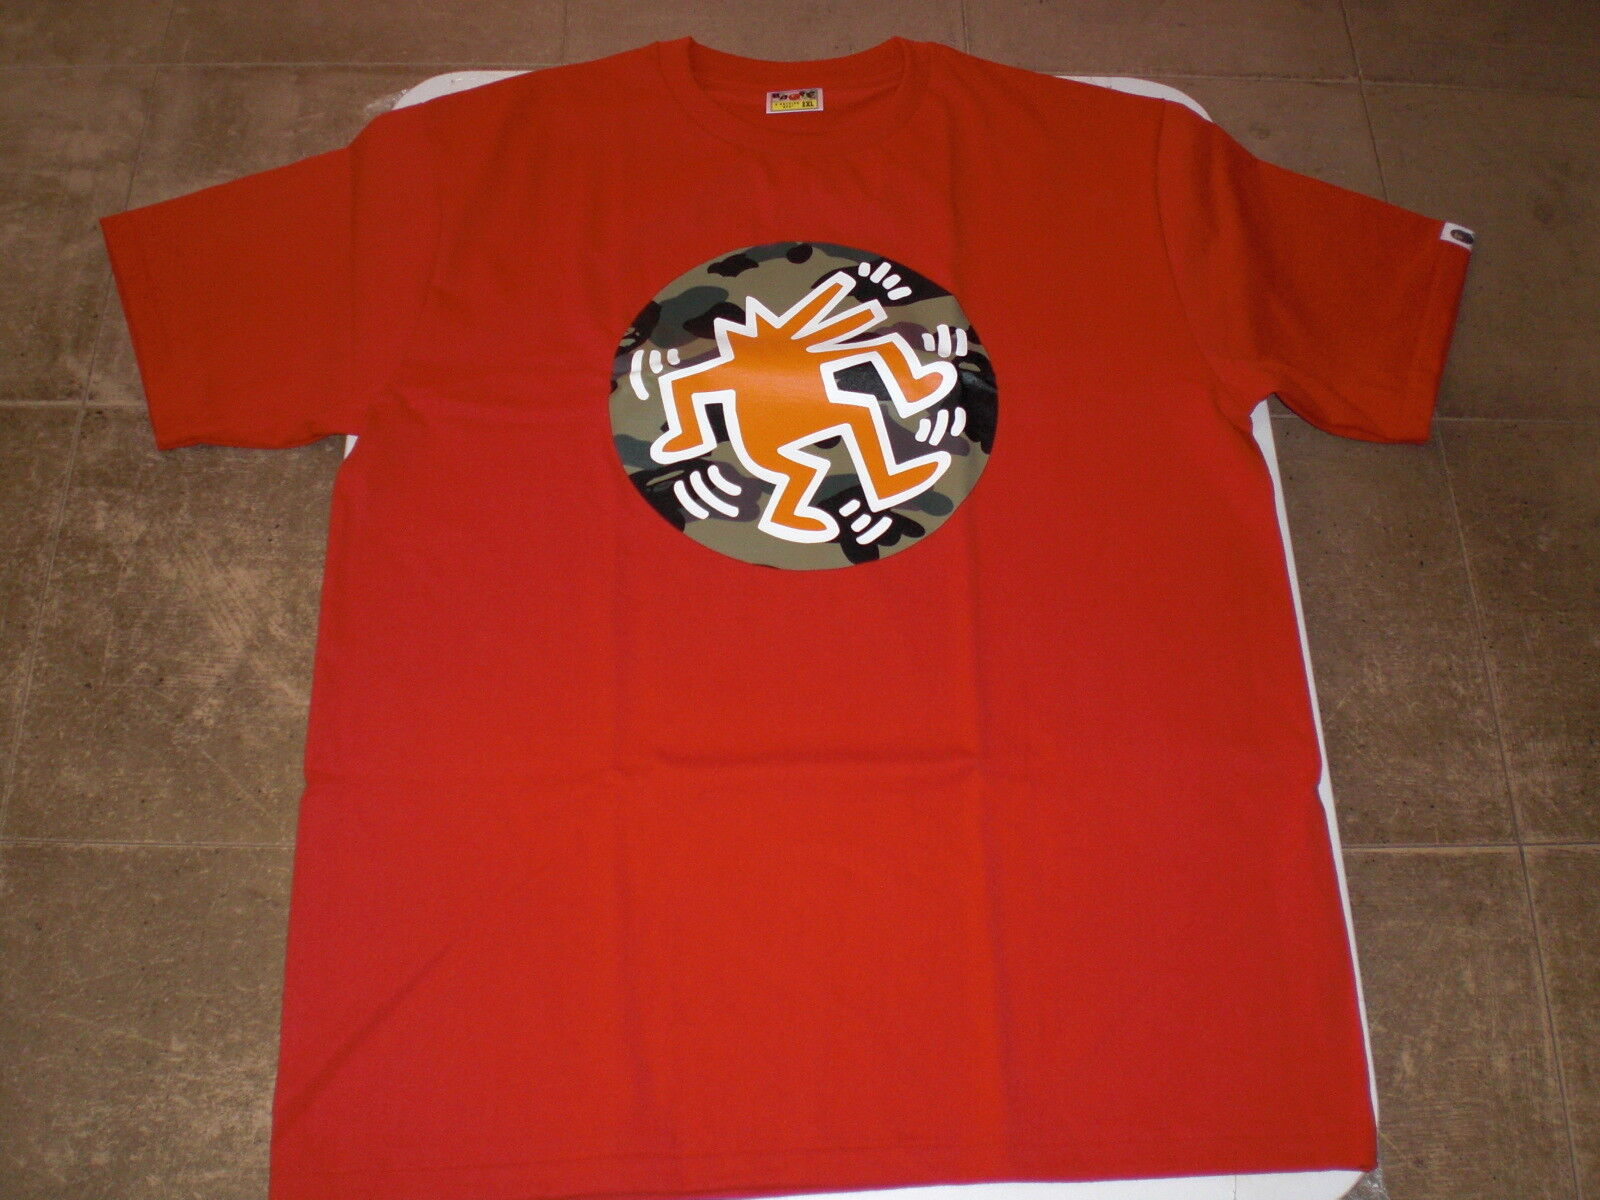 fd54d42f Authentic a Bathing Ape Bape X Keith Haring Tee #5 T Shirt Red 2xl ...